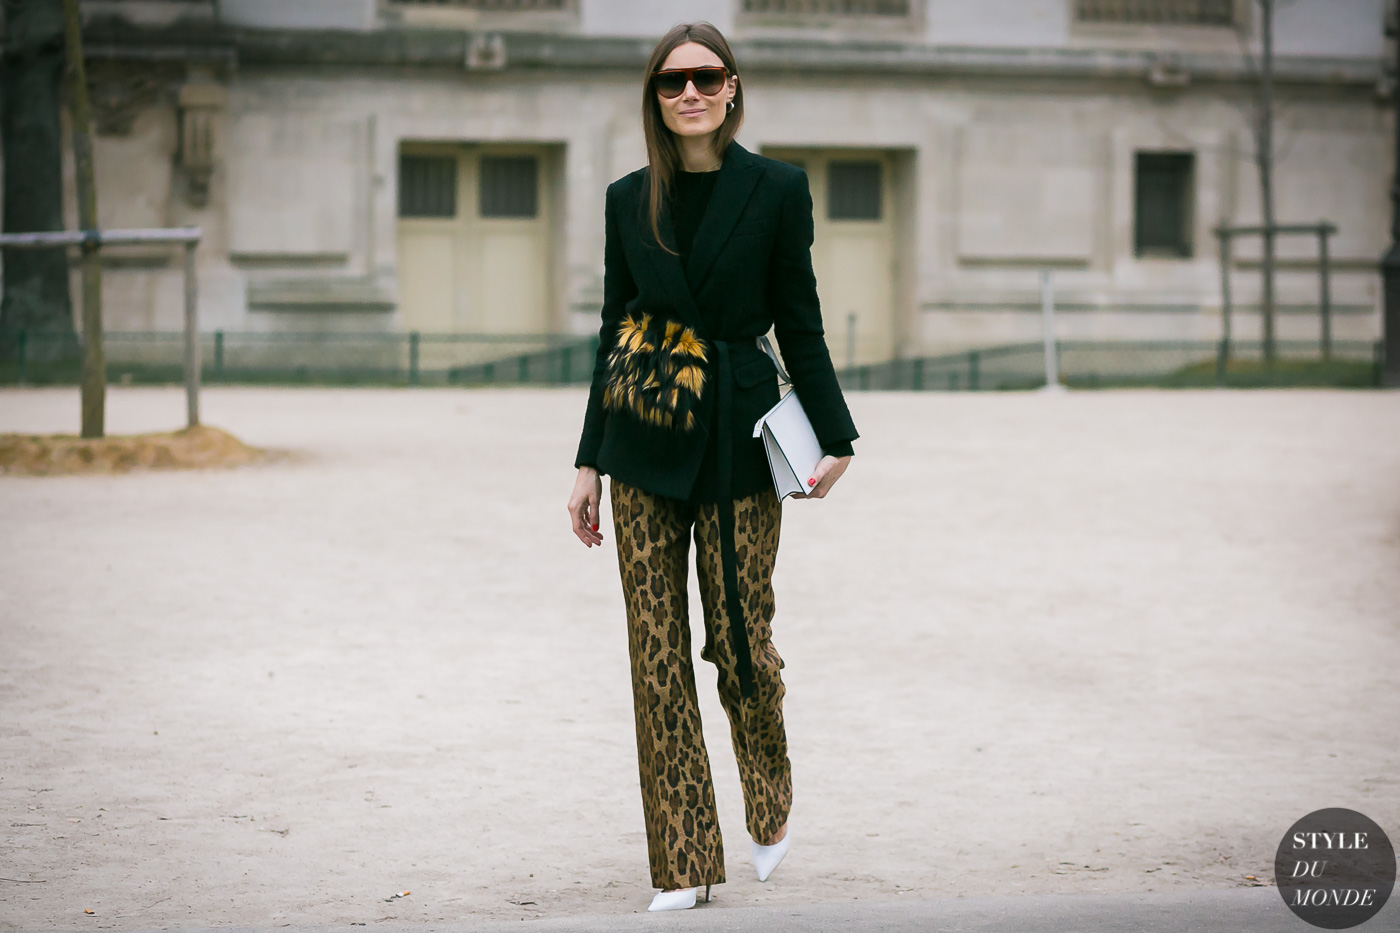 Giorgia Tordini at the Chanel Couture show